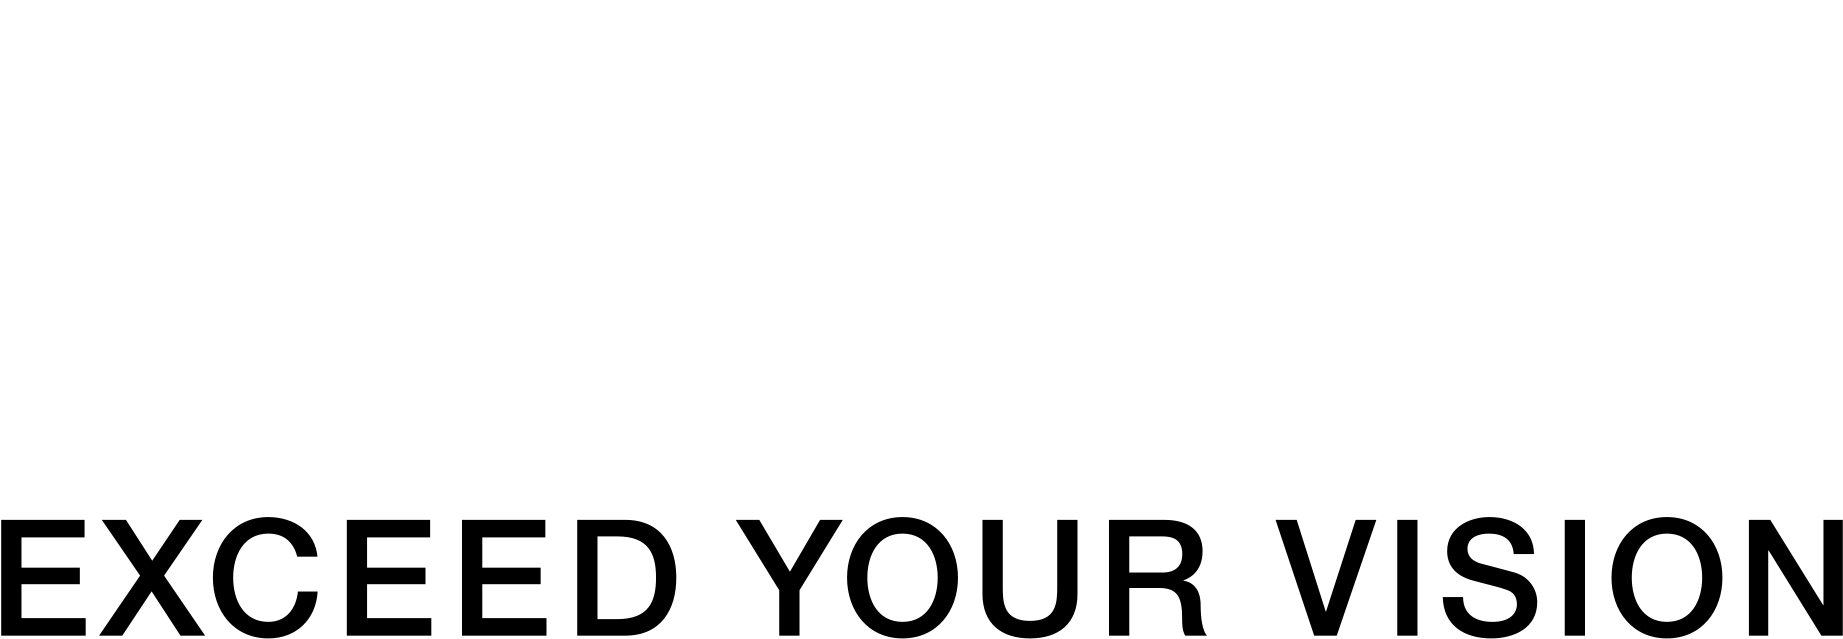 Download Epson Logo Black And White Png Image With No Background Pluspng.com  - Epson Logo PNG